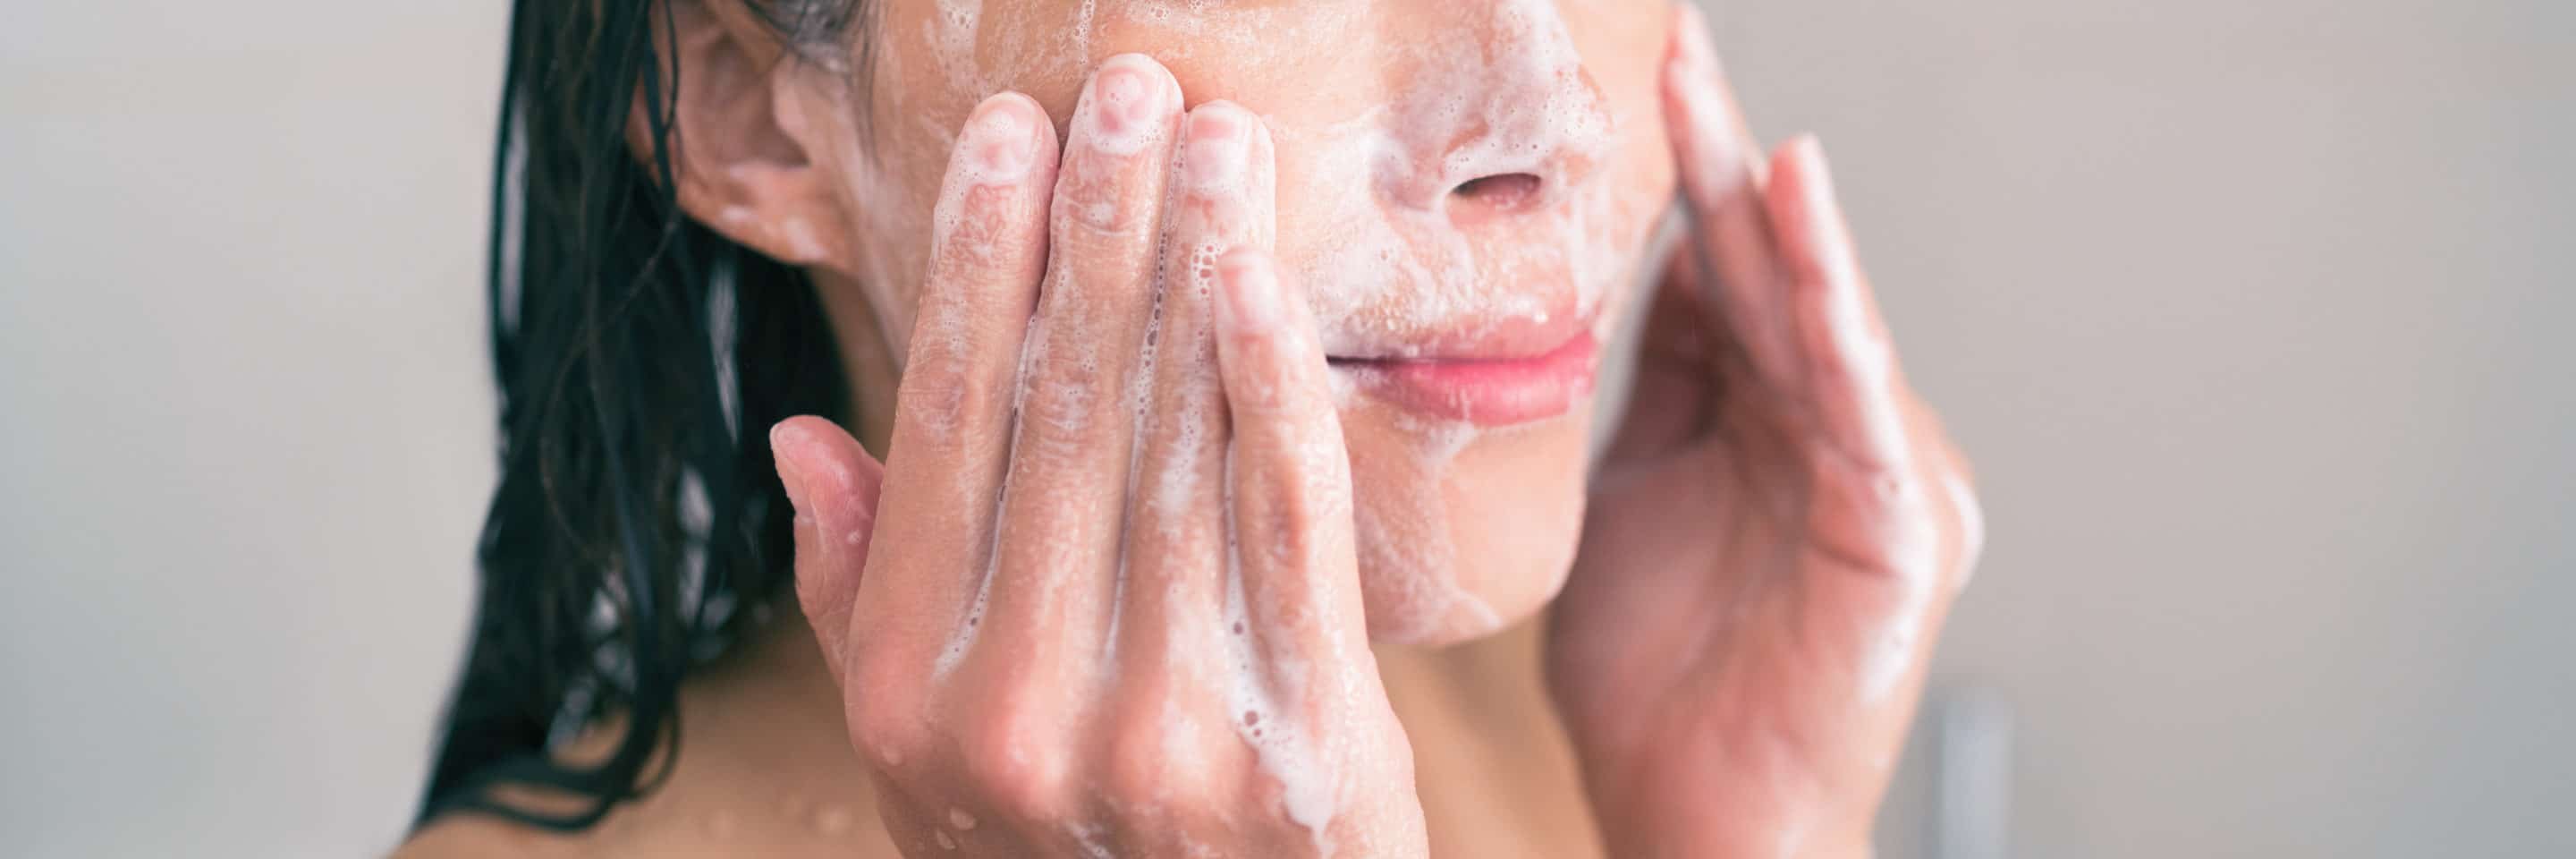 An image of a woman thoroughly cleansing her face with a white lather.